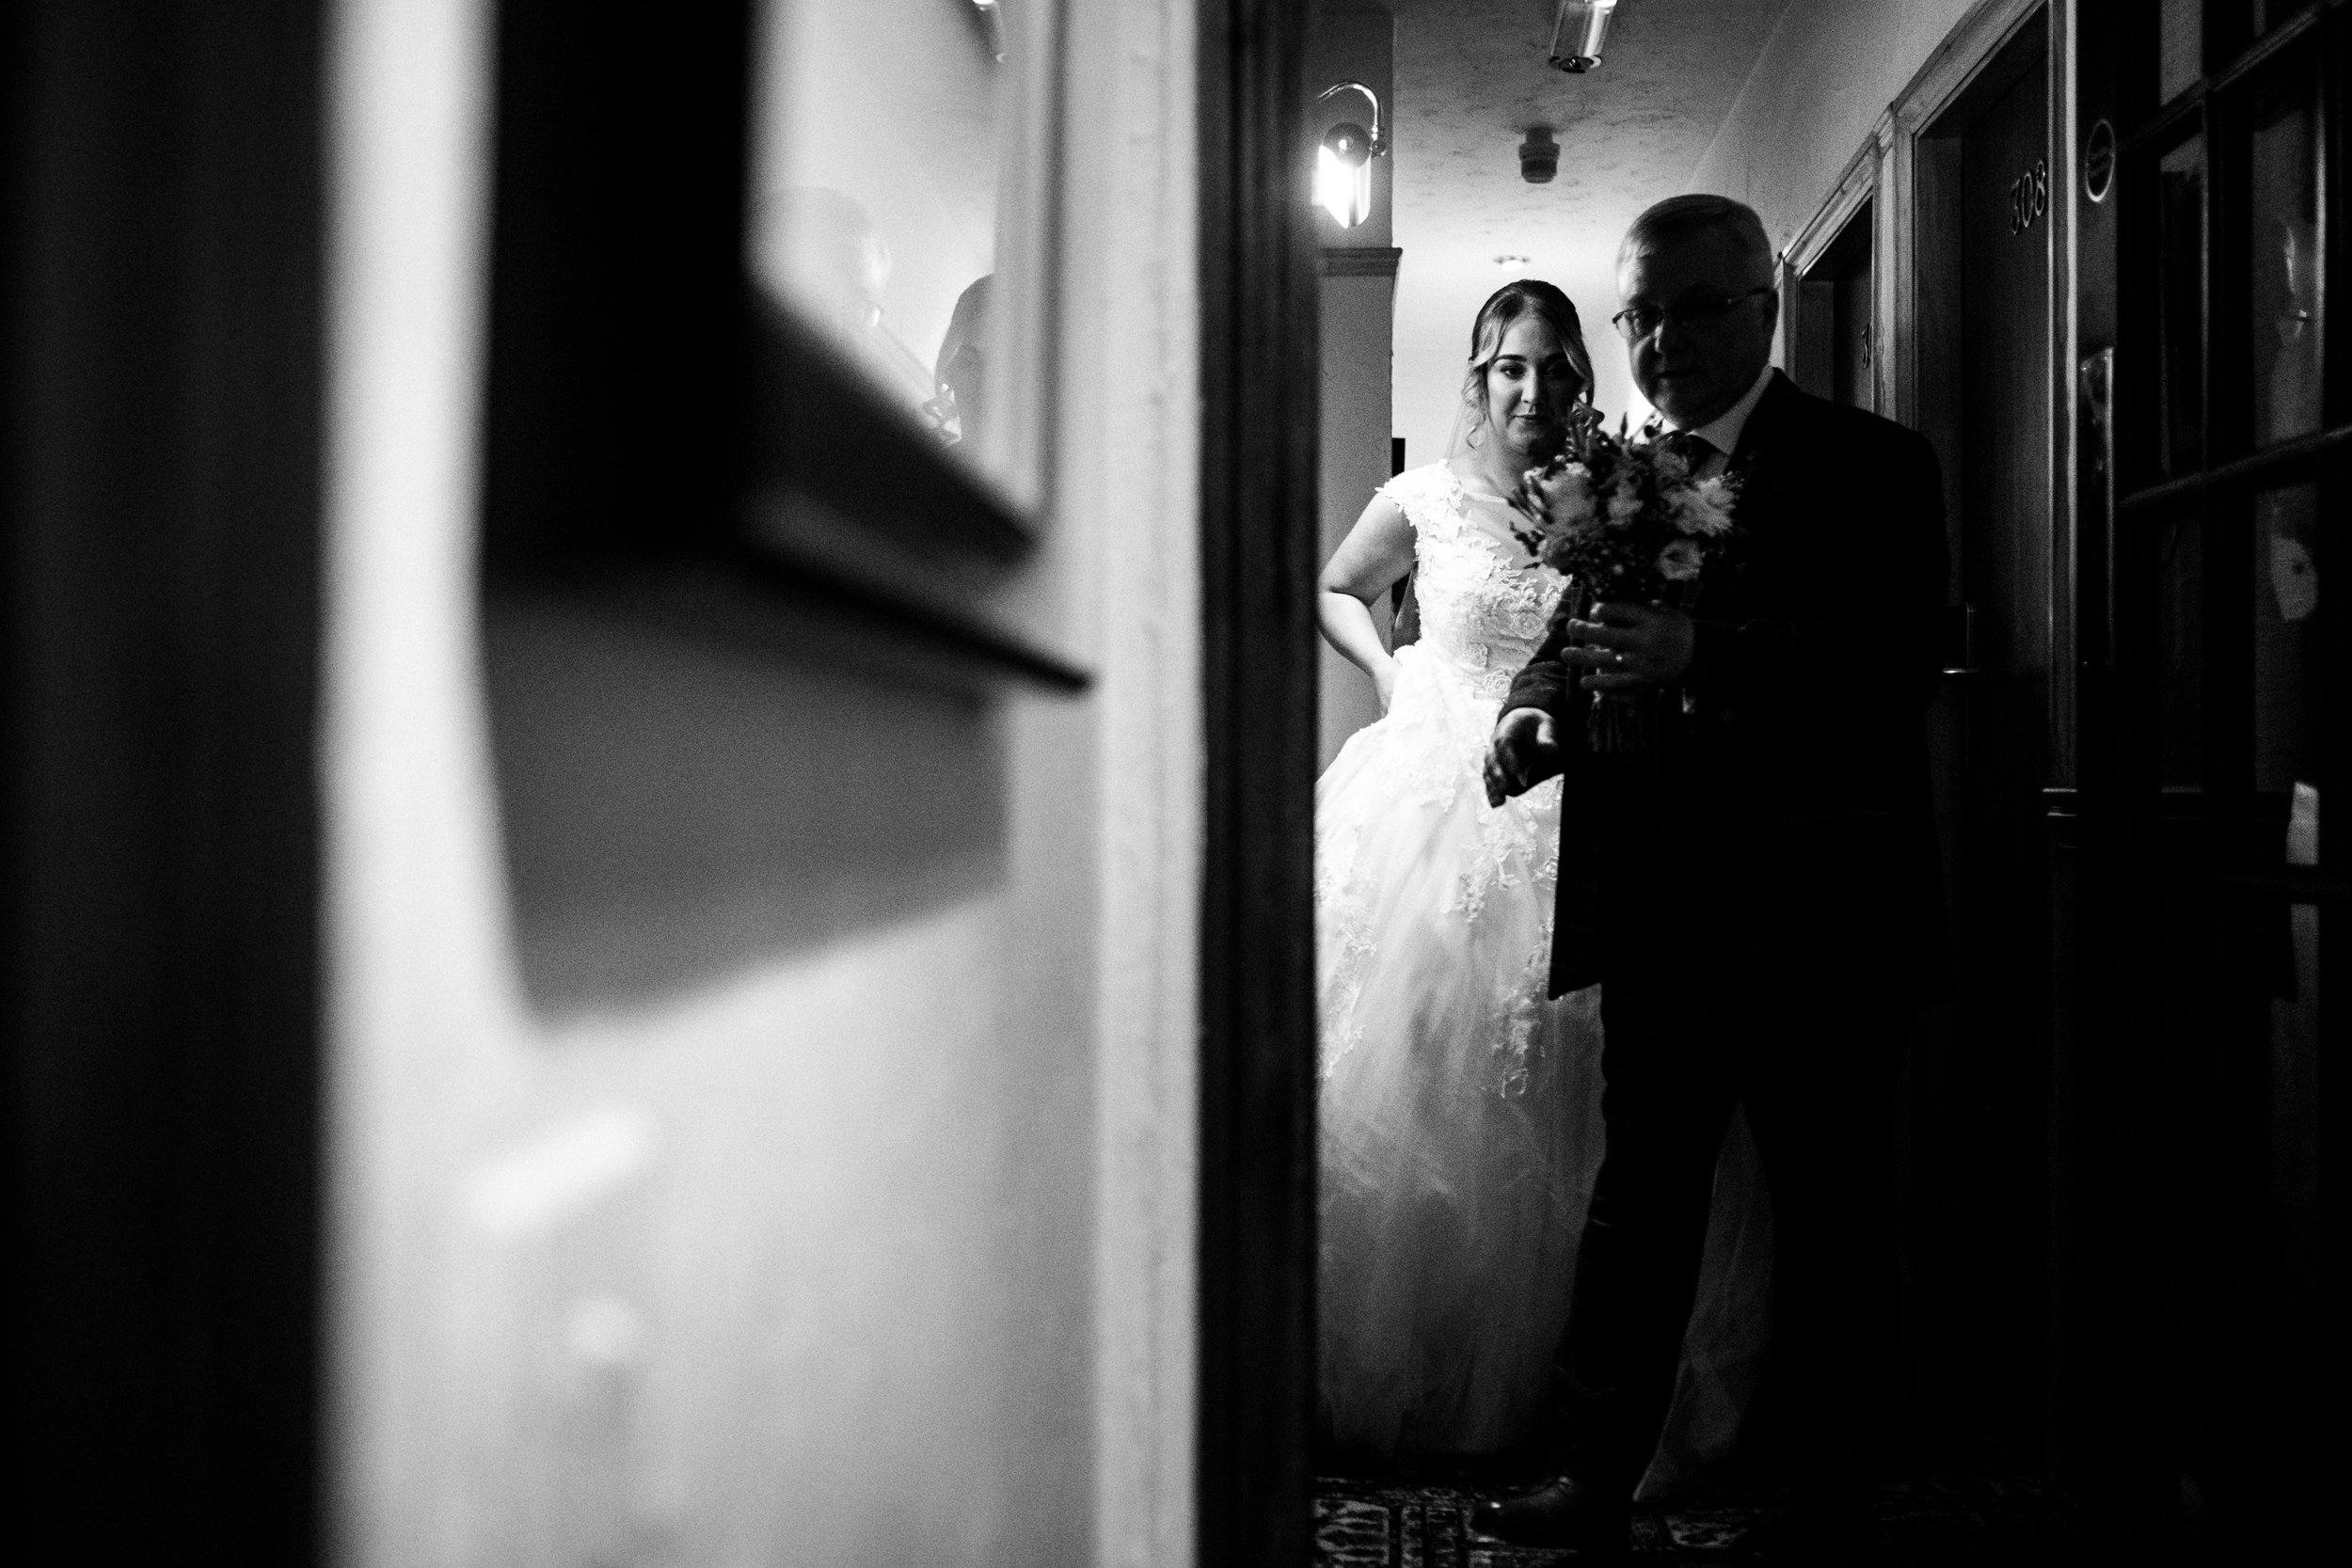 Autumn Wedding Photography at The Three Horseshoes, Blackshaw Moor, Staffordshire Moorlands - Jenny Harper-19.jpg